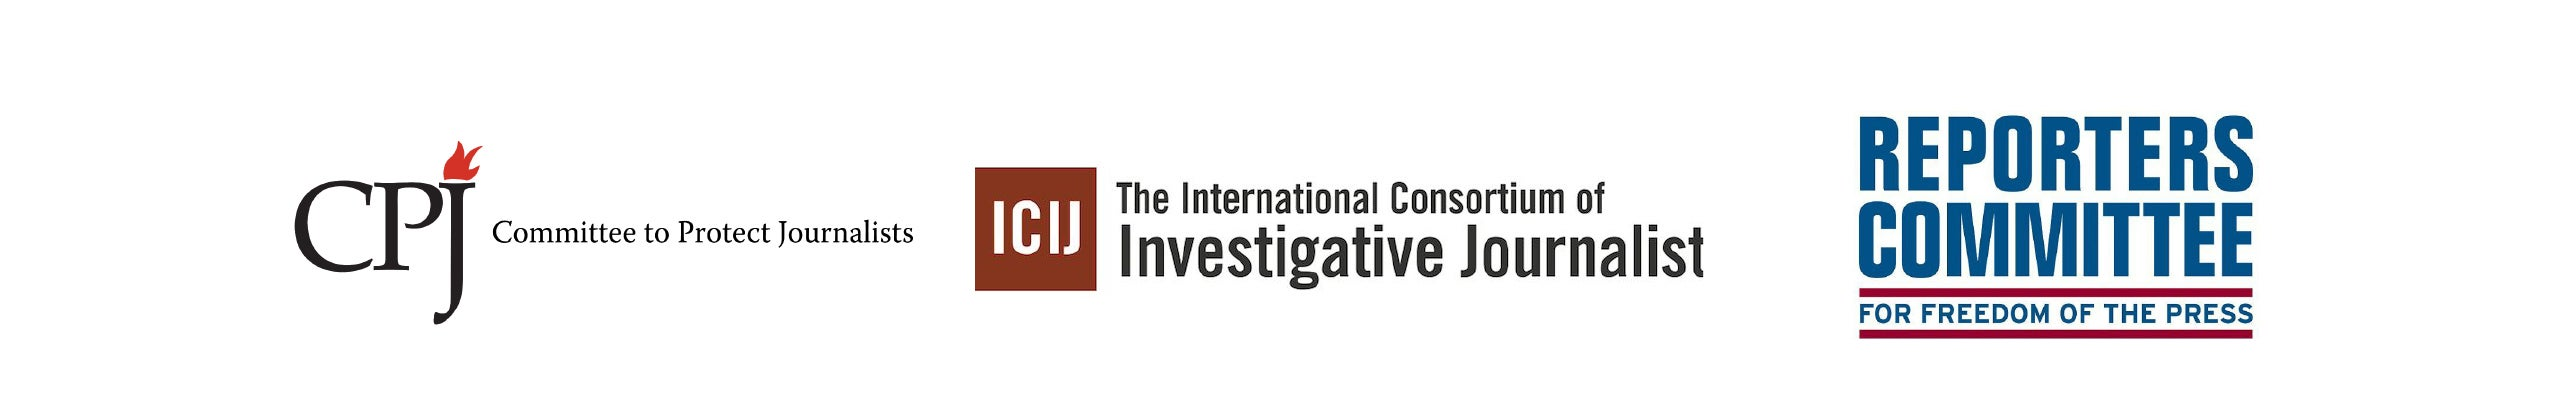 Committee to Protect Journalists, International Consortium of Investigative Journalists, and the Reporters Committee for Freedom of the Press